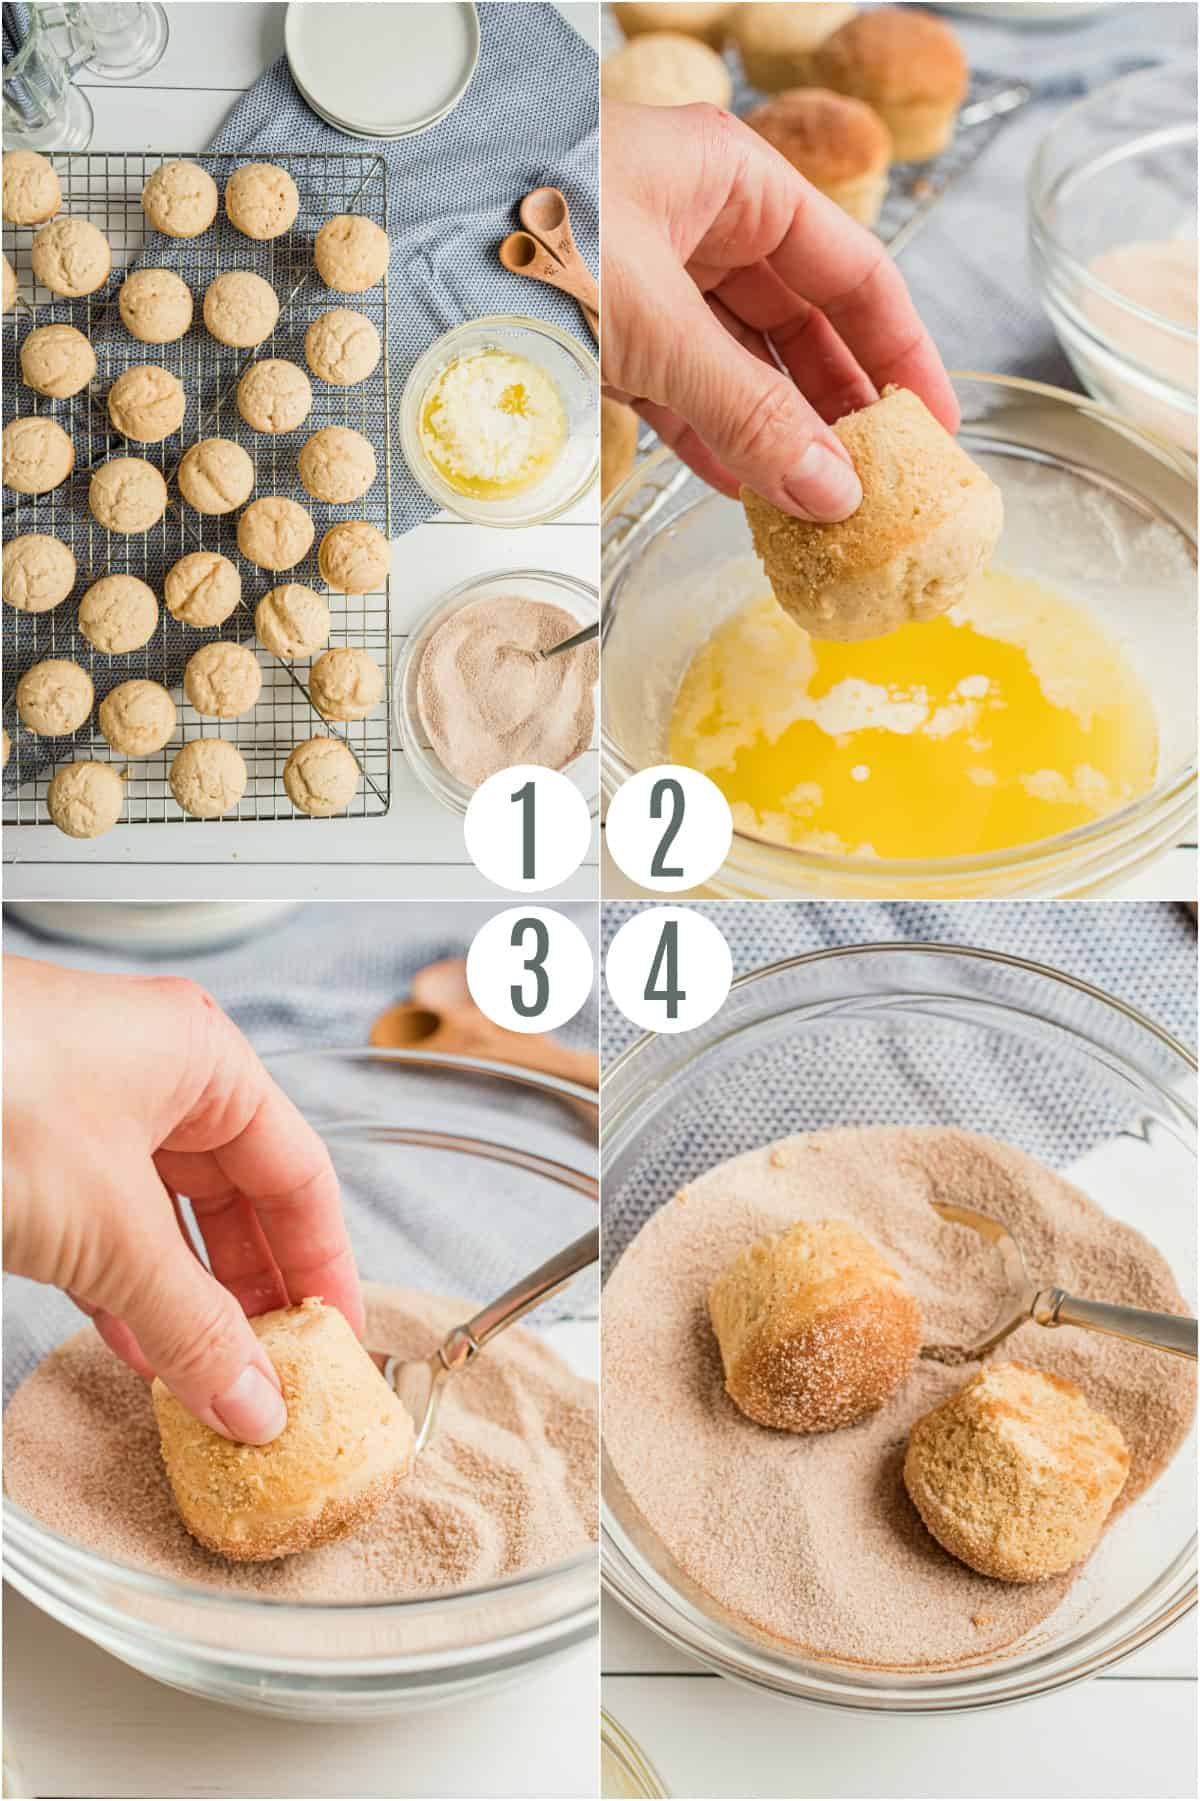 Step by step photos showing how to dunk cooked muffins in cinnamon sugar mix and butter.